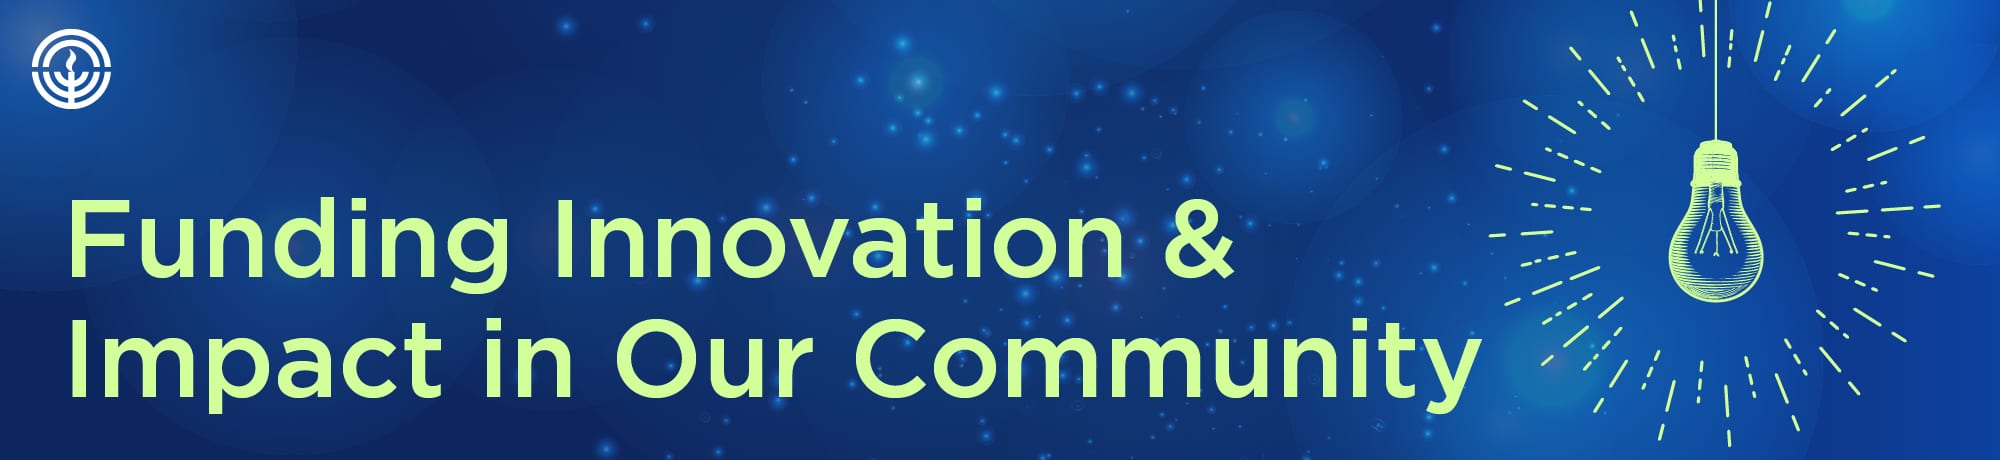 Funding Innovation and Impact in Our Community. Blue banner with green lightbulb.